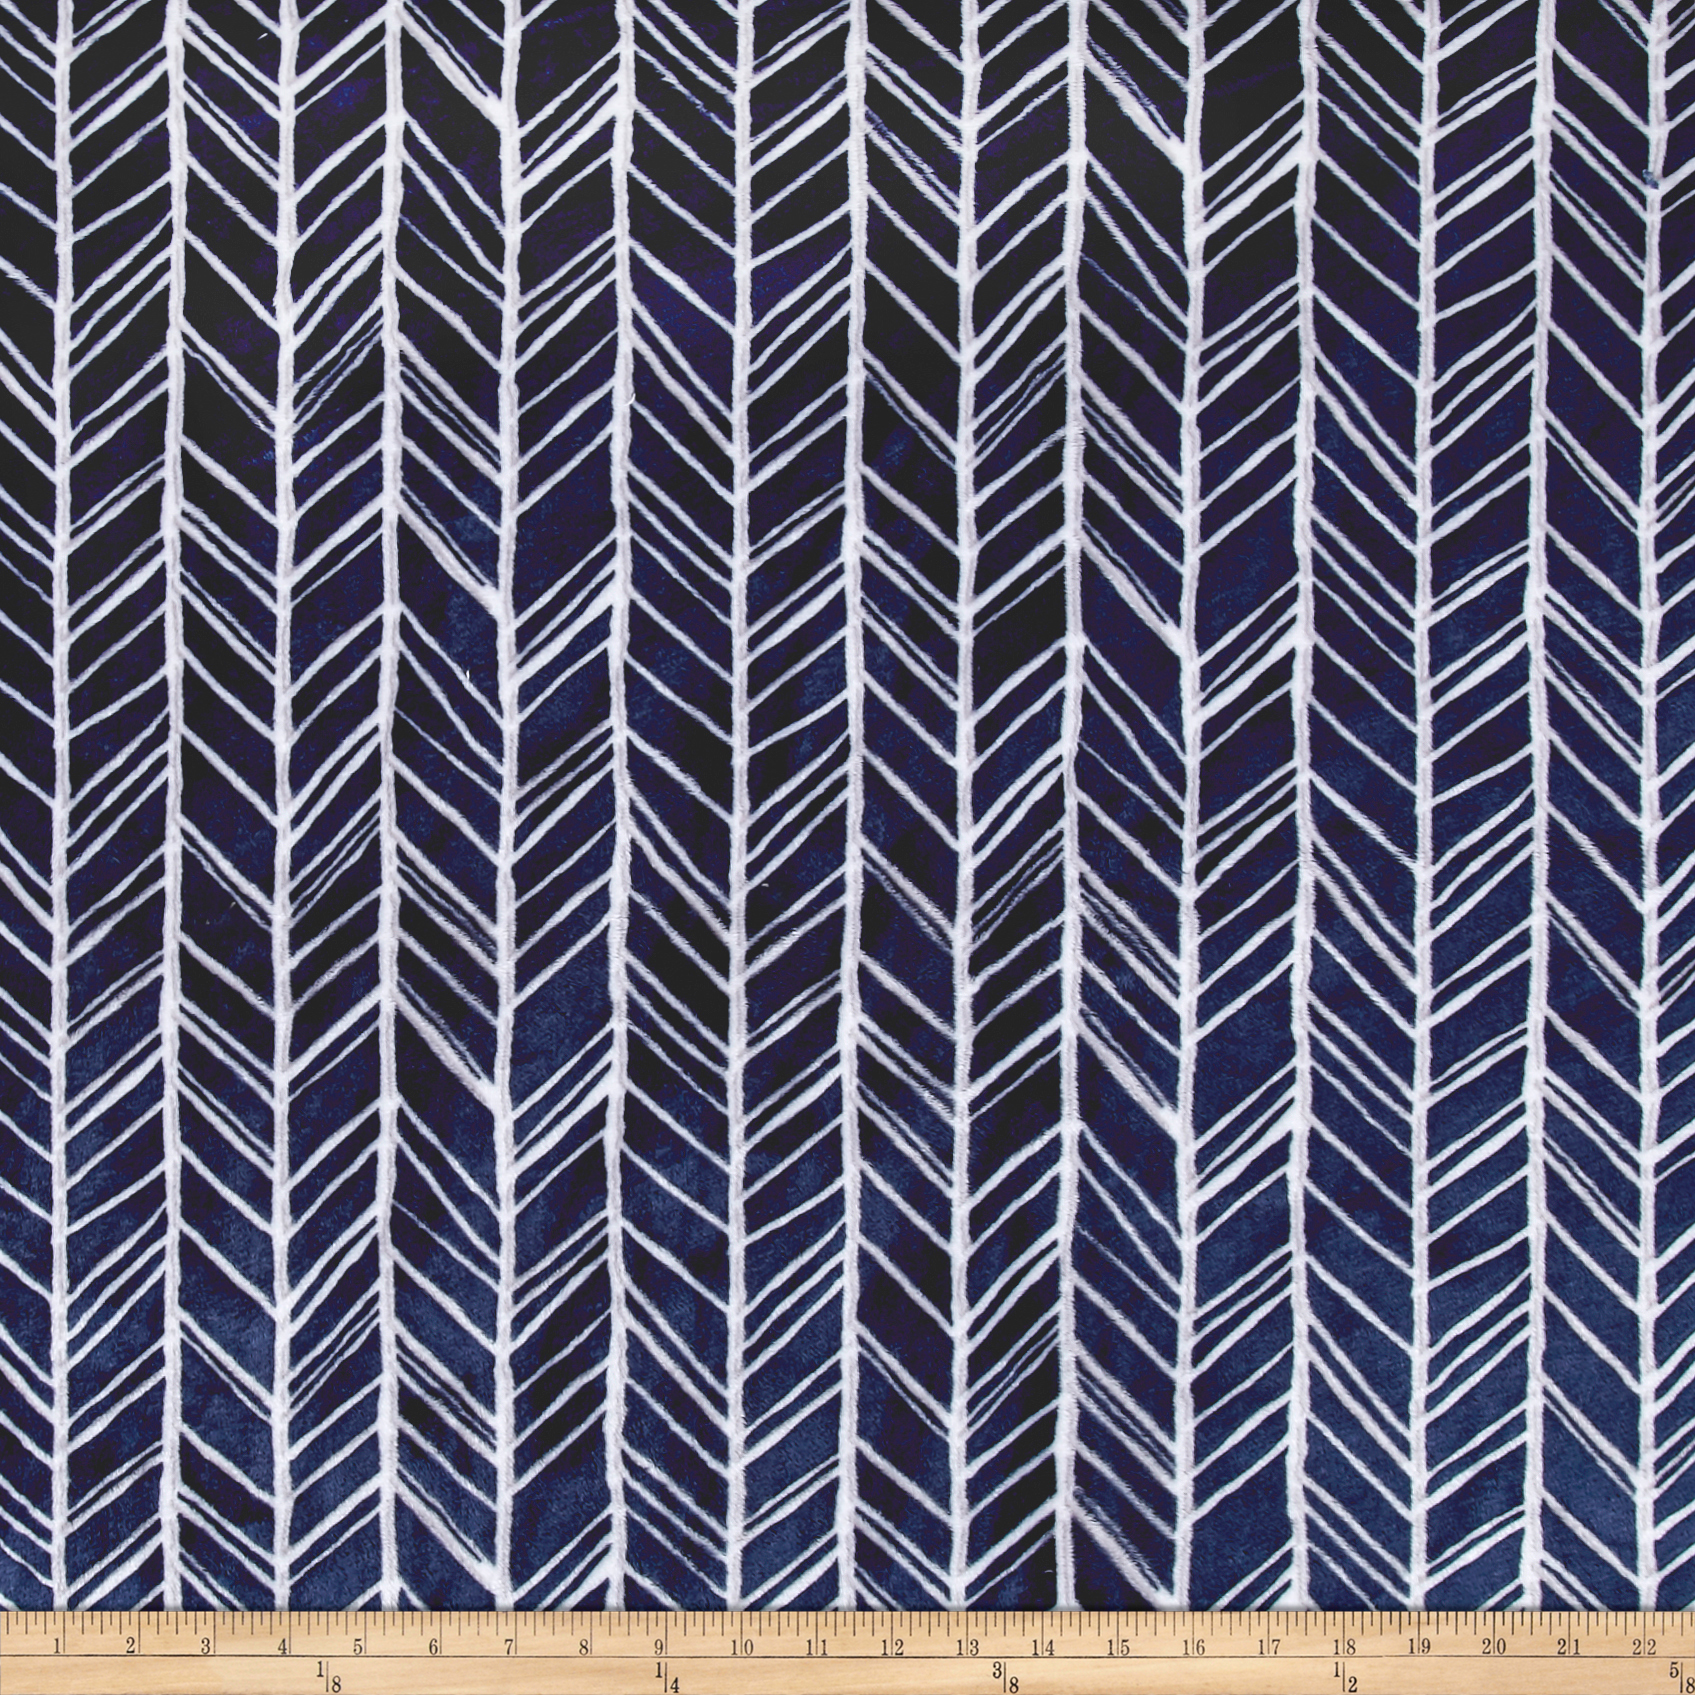 Image of Shannon Minky Cuddle Herringbone Navy/Steel Fabric